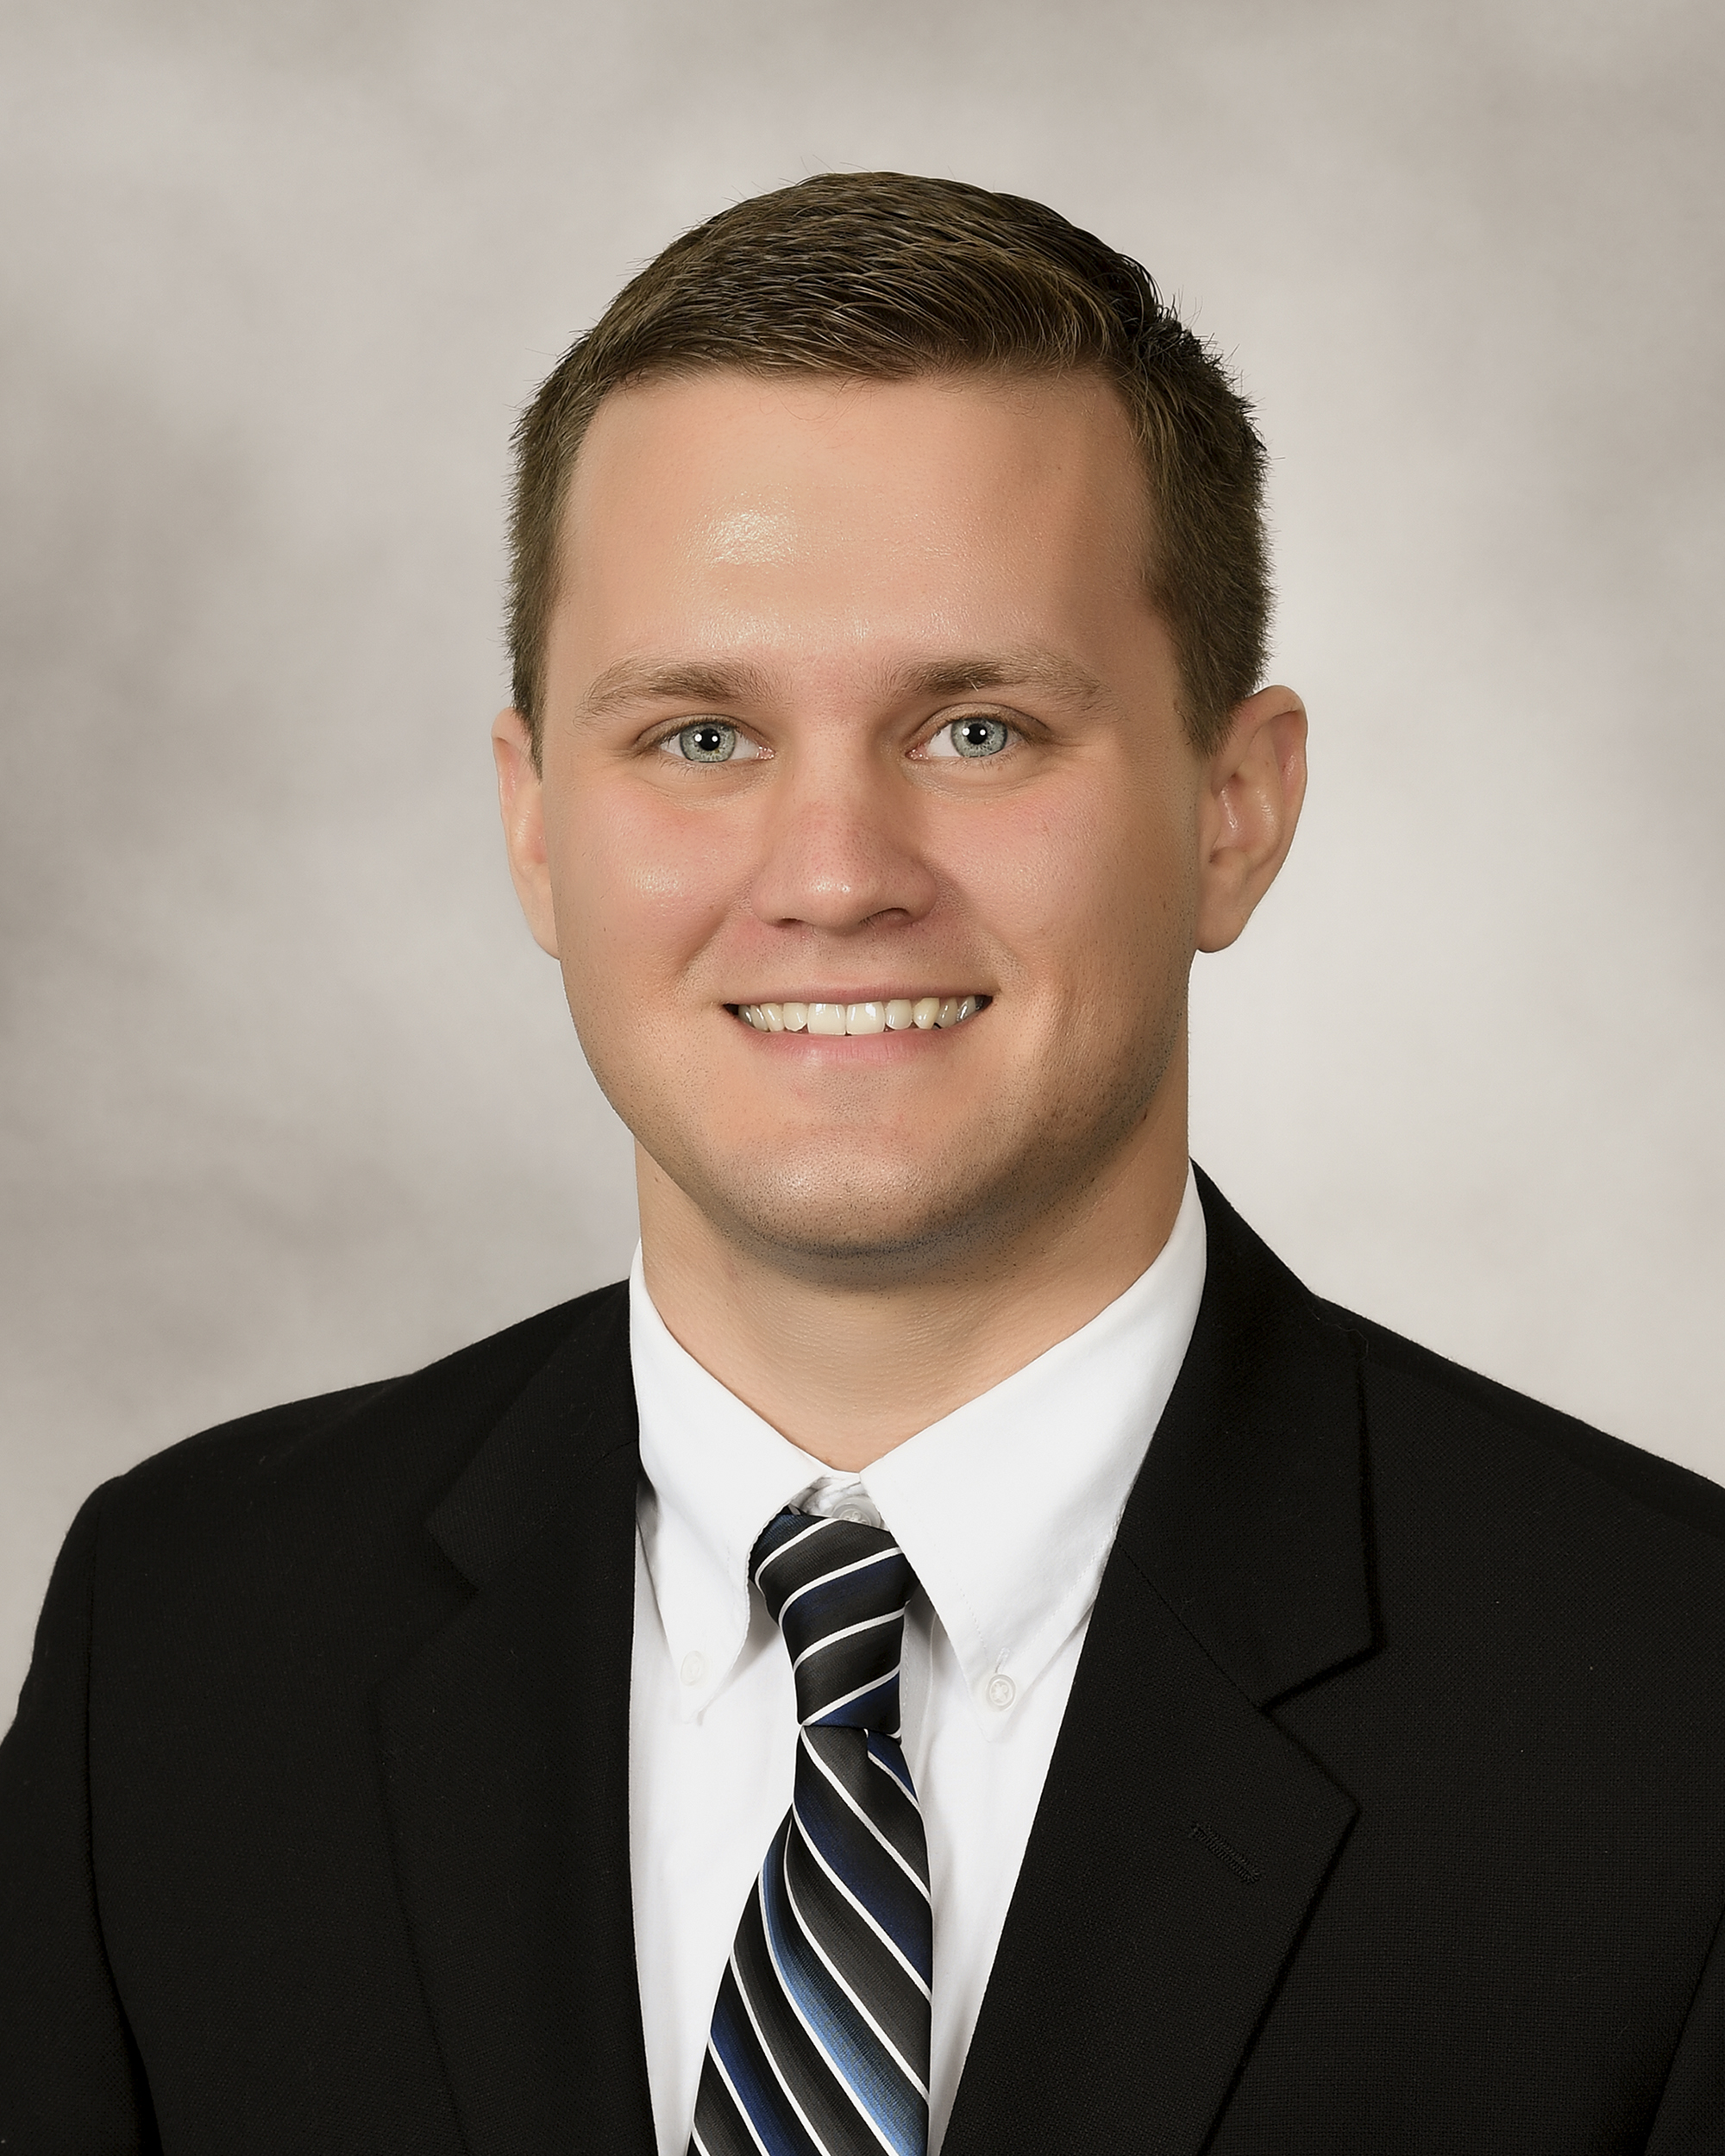 Lucas Wright - Hometown: Georgetown, KYEducation: B.S., Biology - University of Pikeville; DO - Kentucky College of Osteopathic MedicinePersonal Interests: Anything sports related, hiking, spending time with my wife and dog